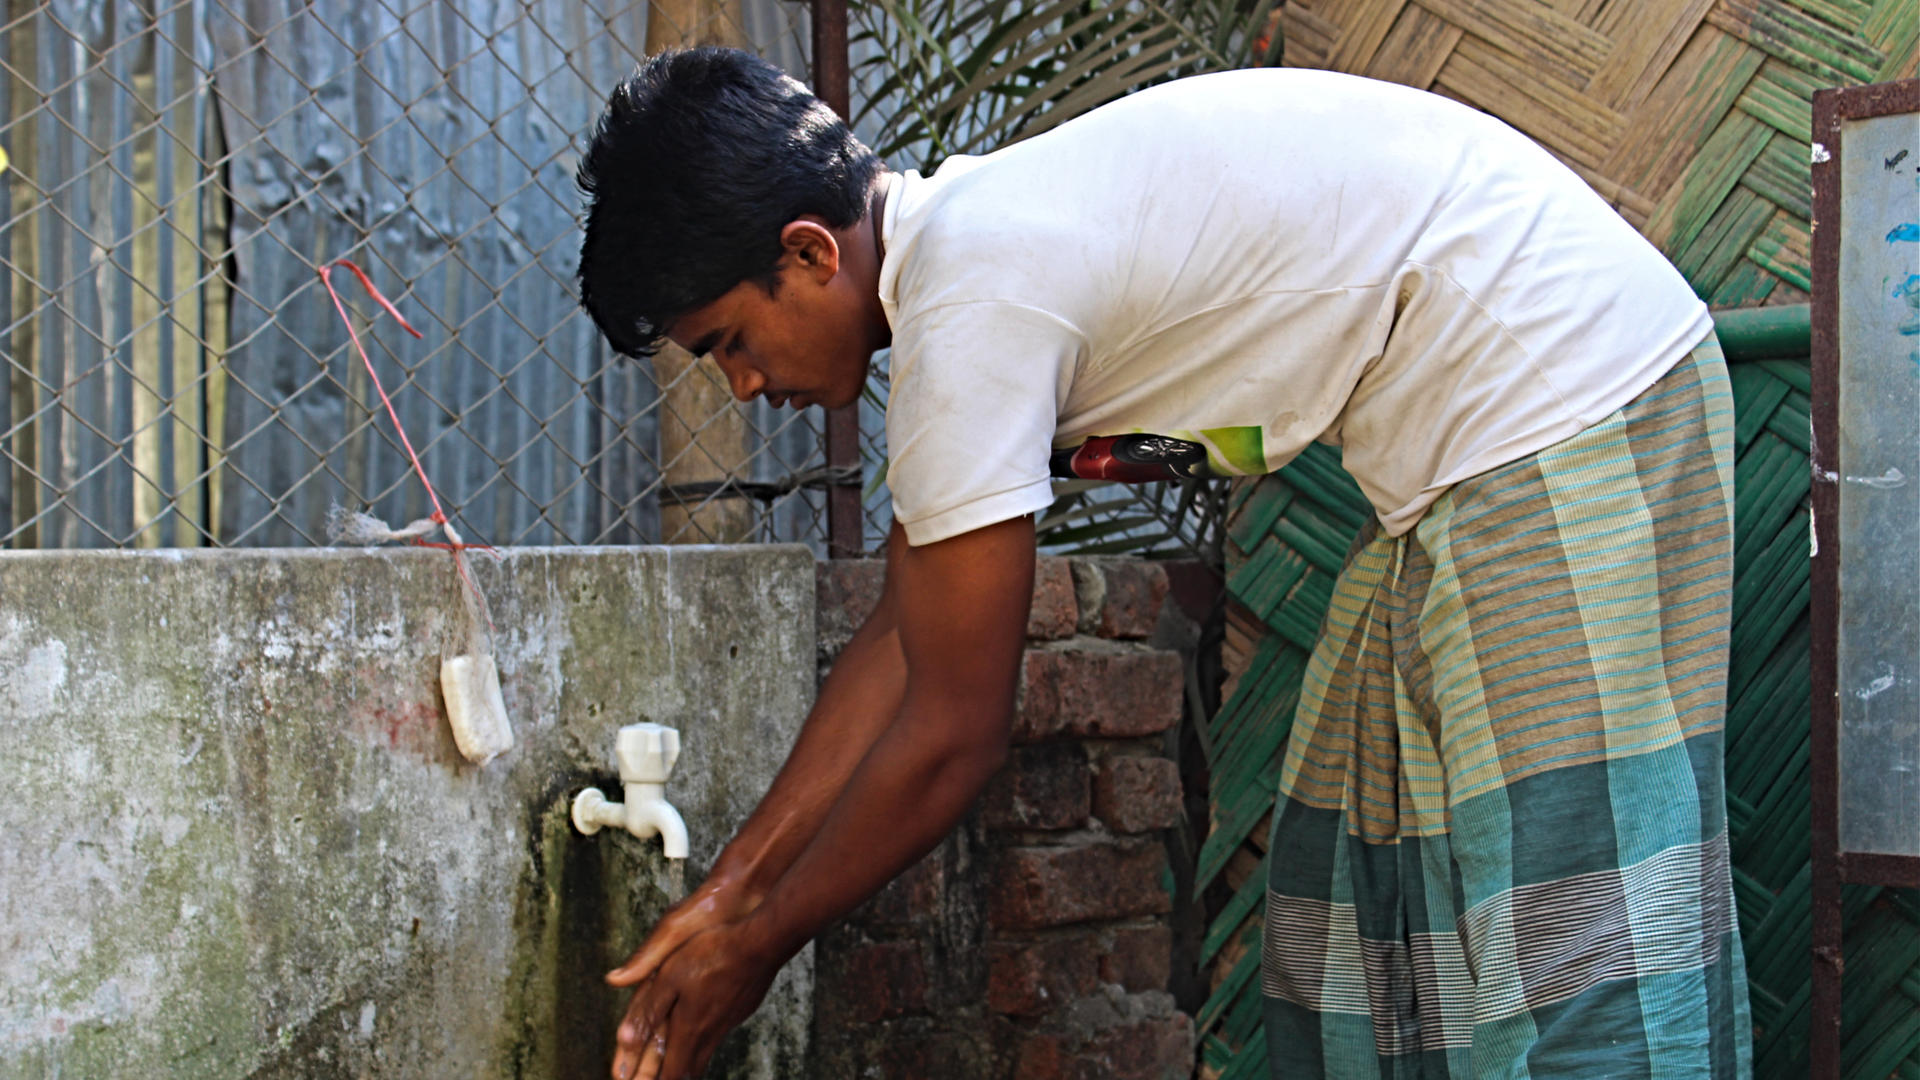 A young refugee washes his hands at a tap in refugee camp where the International Rescue Committee works in Bangladesh.